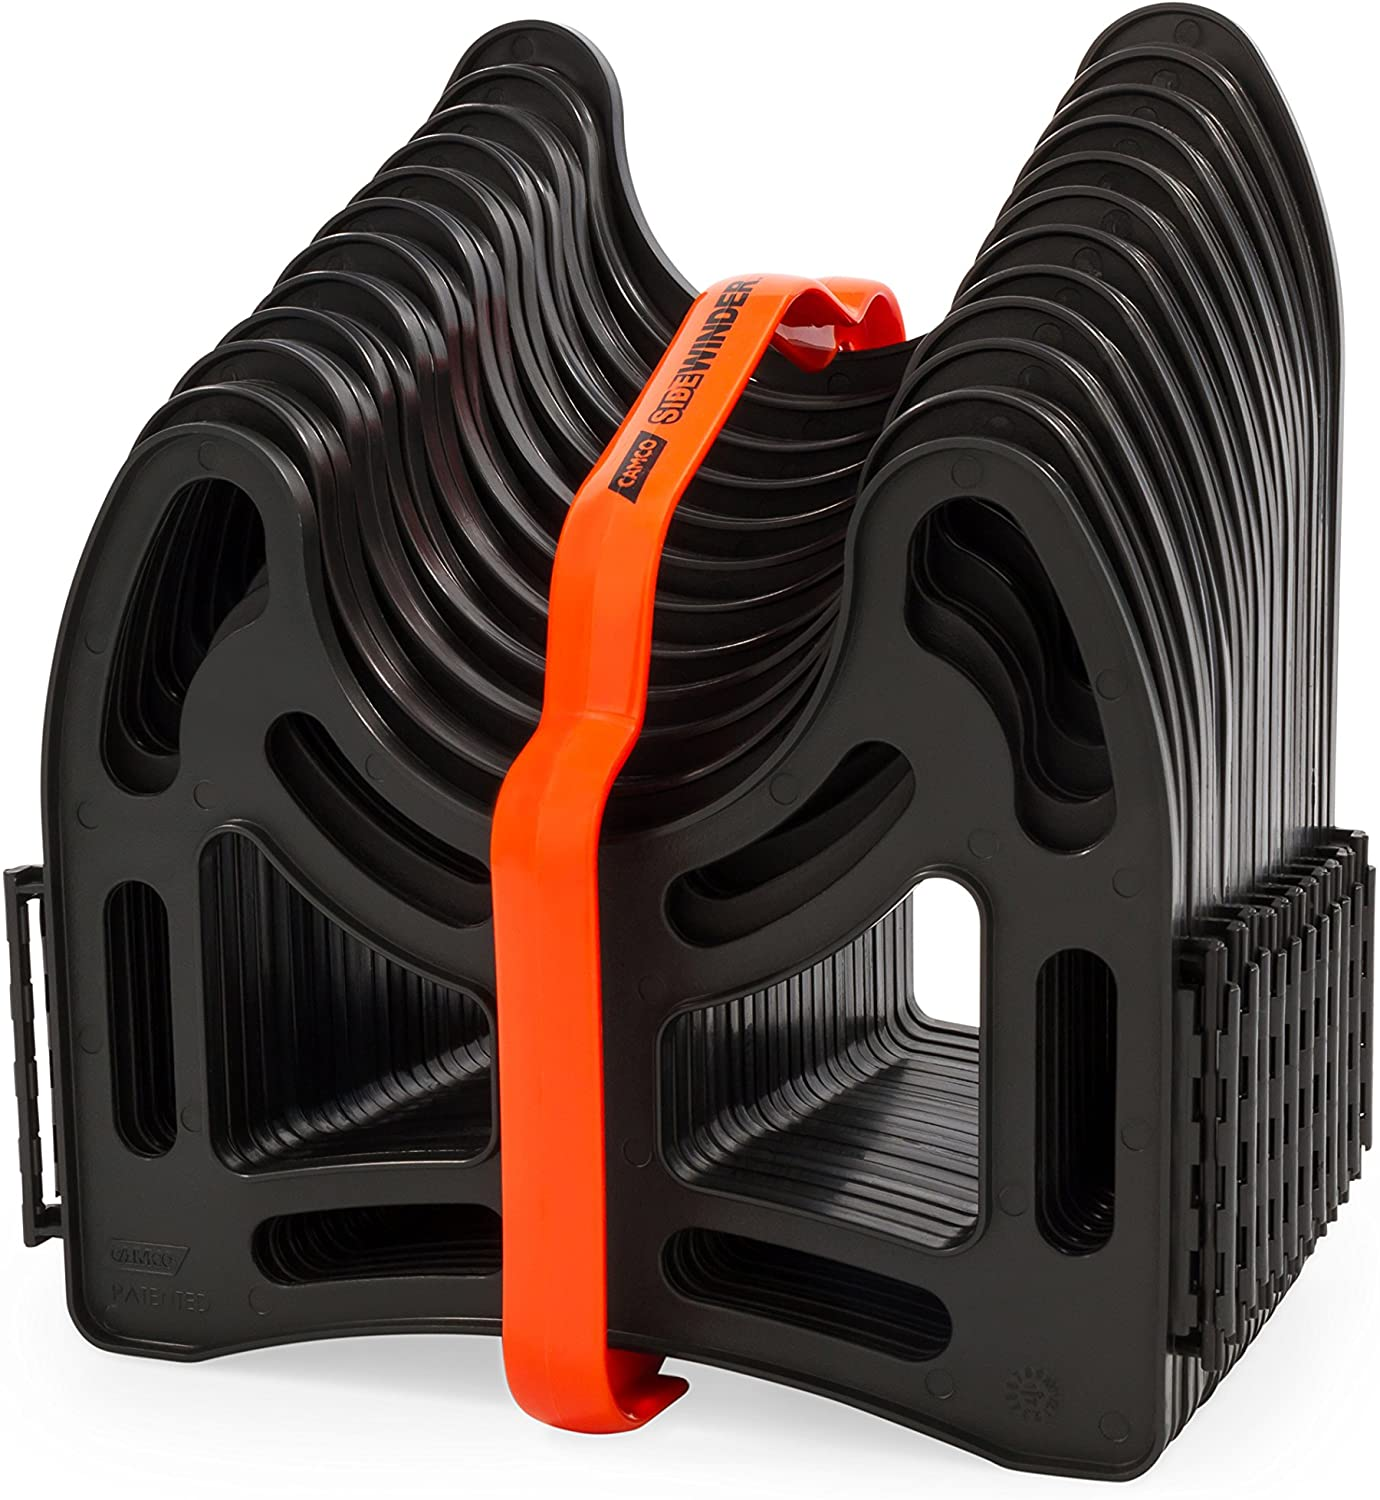 Amazon Com Camco 43031 10ft Sidewinder Rv Sewer Hose Support Made From Sturdy Lightweight Plastic Won T Creep Closed Holds Hoses In Place No Need For Straps Automotive